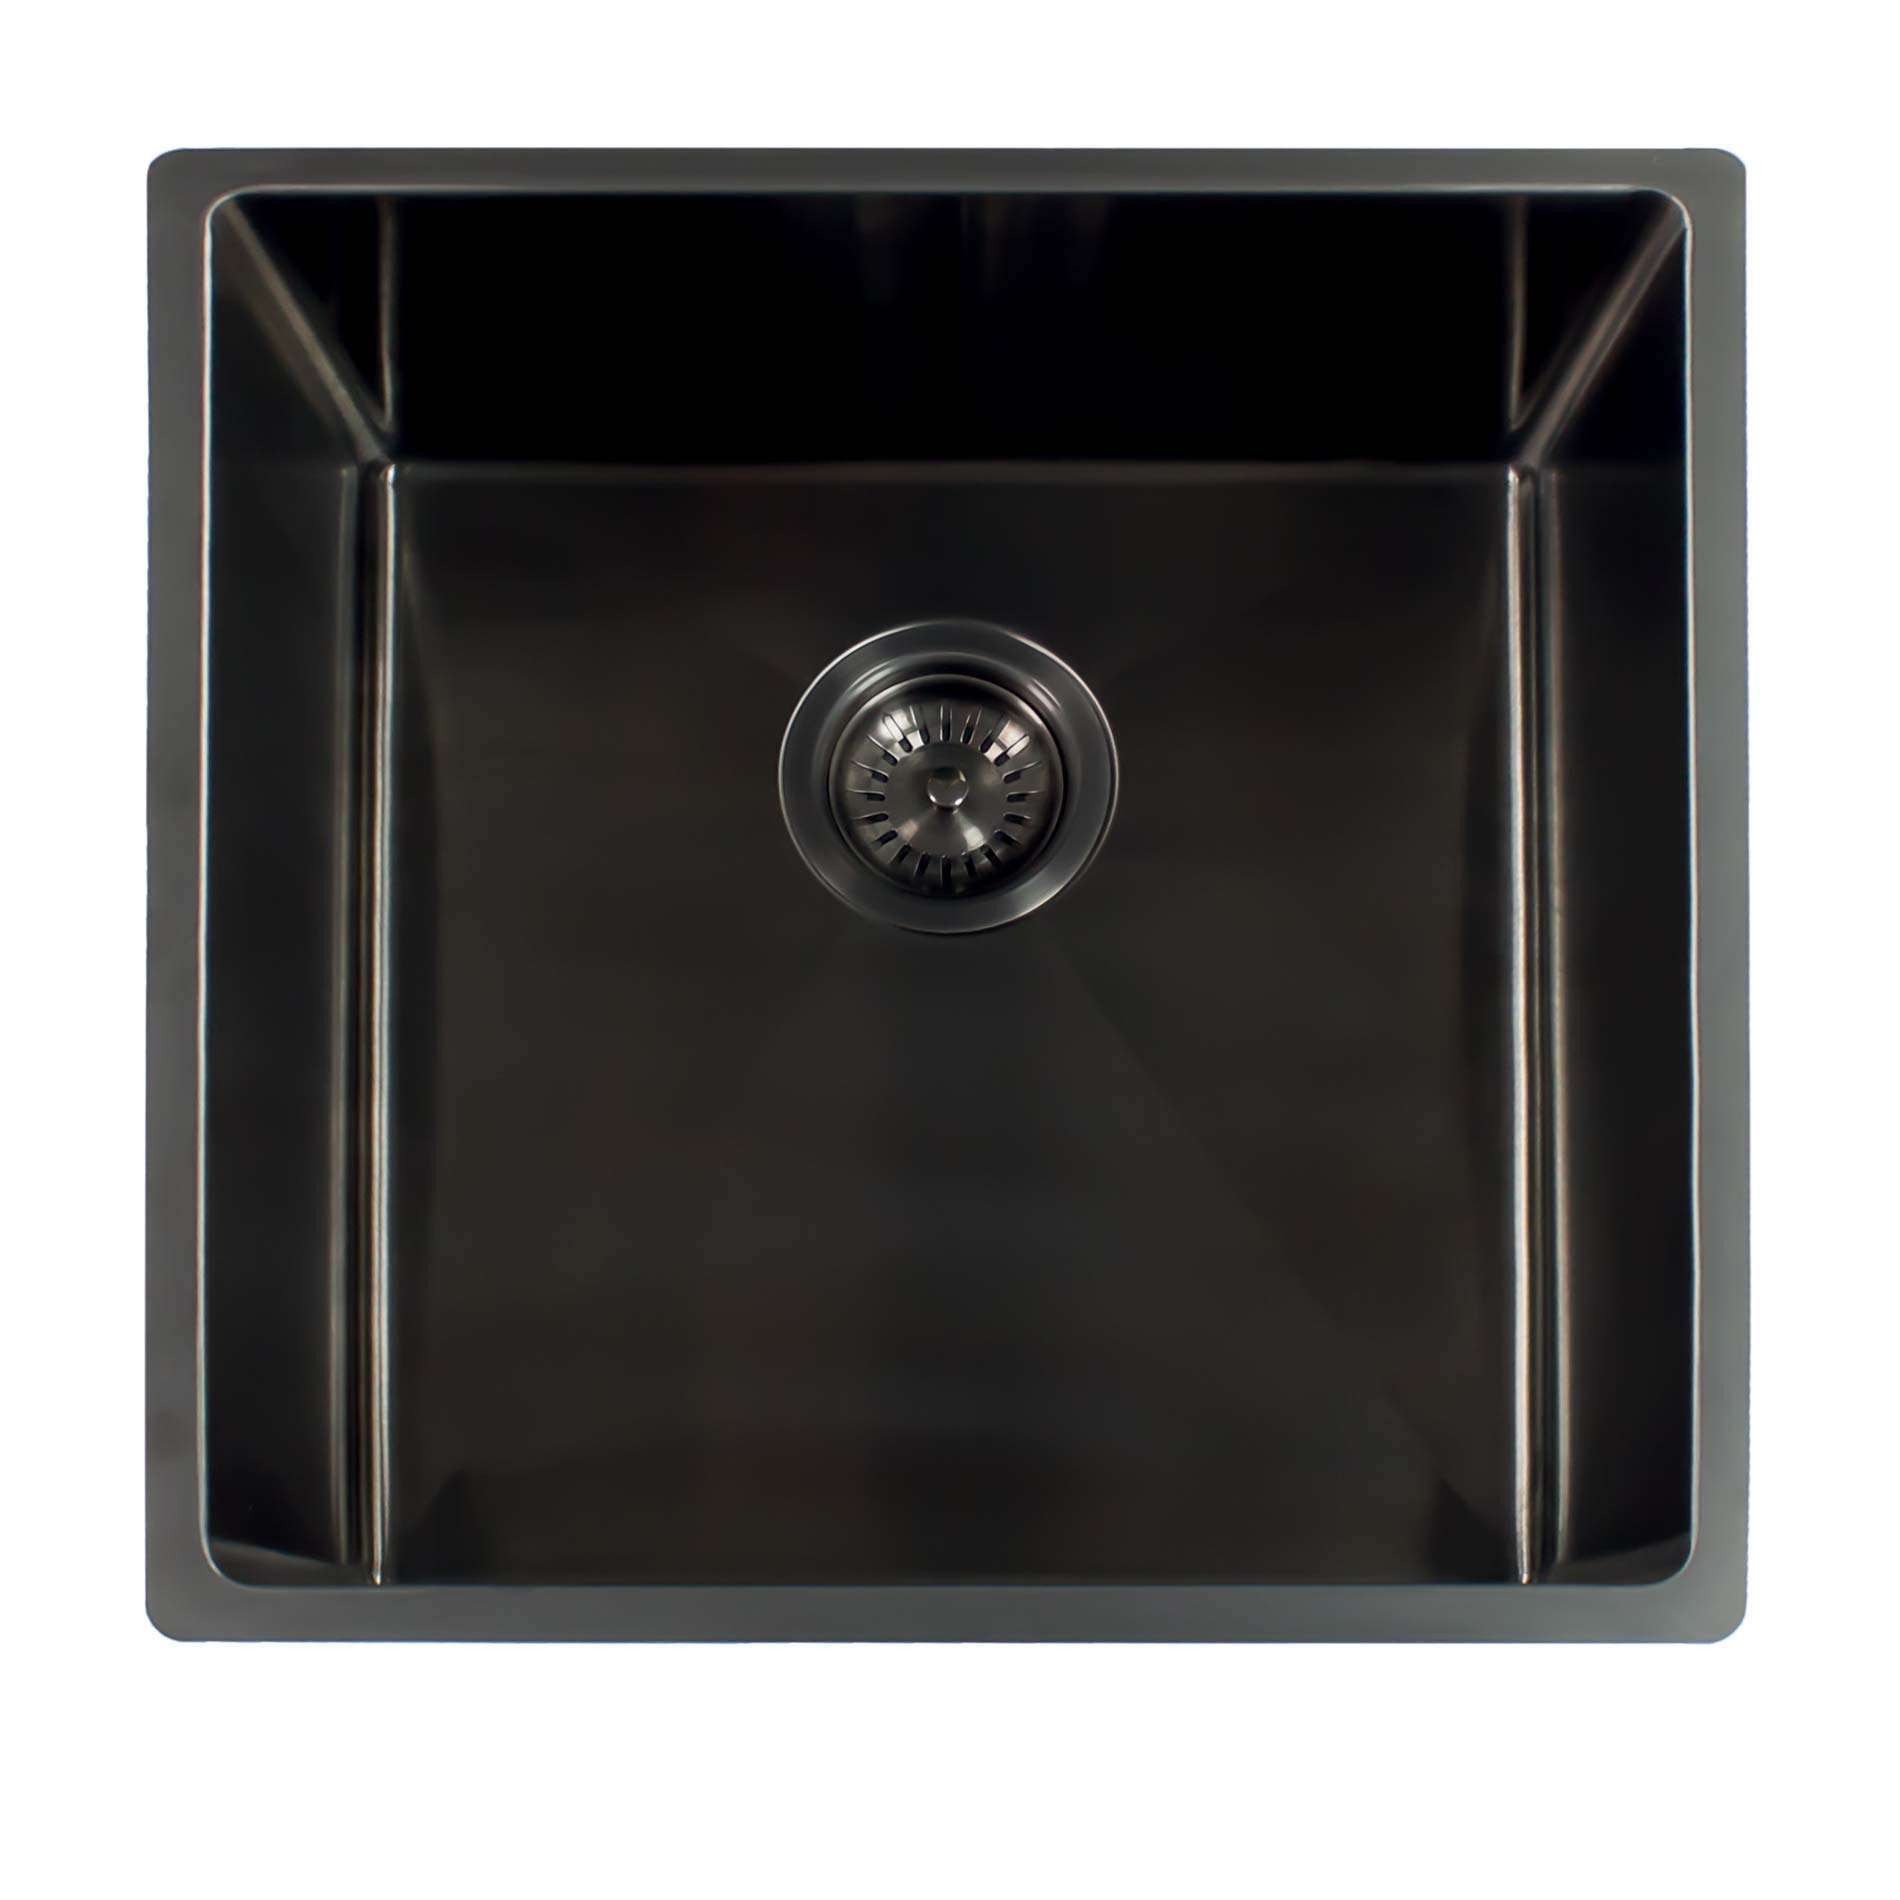 Reginox: Miami 50x40 Gunmetal Sink - Kitchen Sinks & Taps